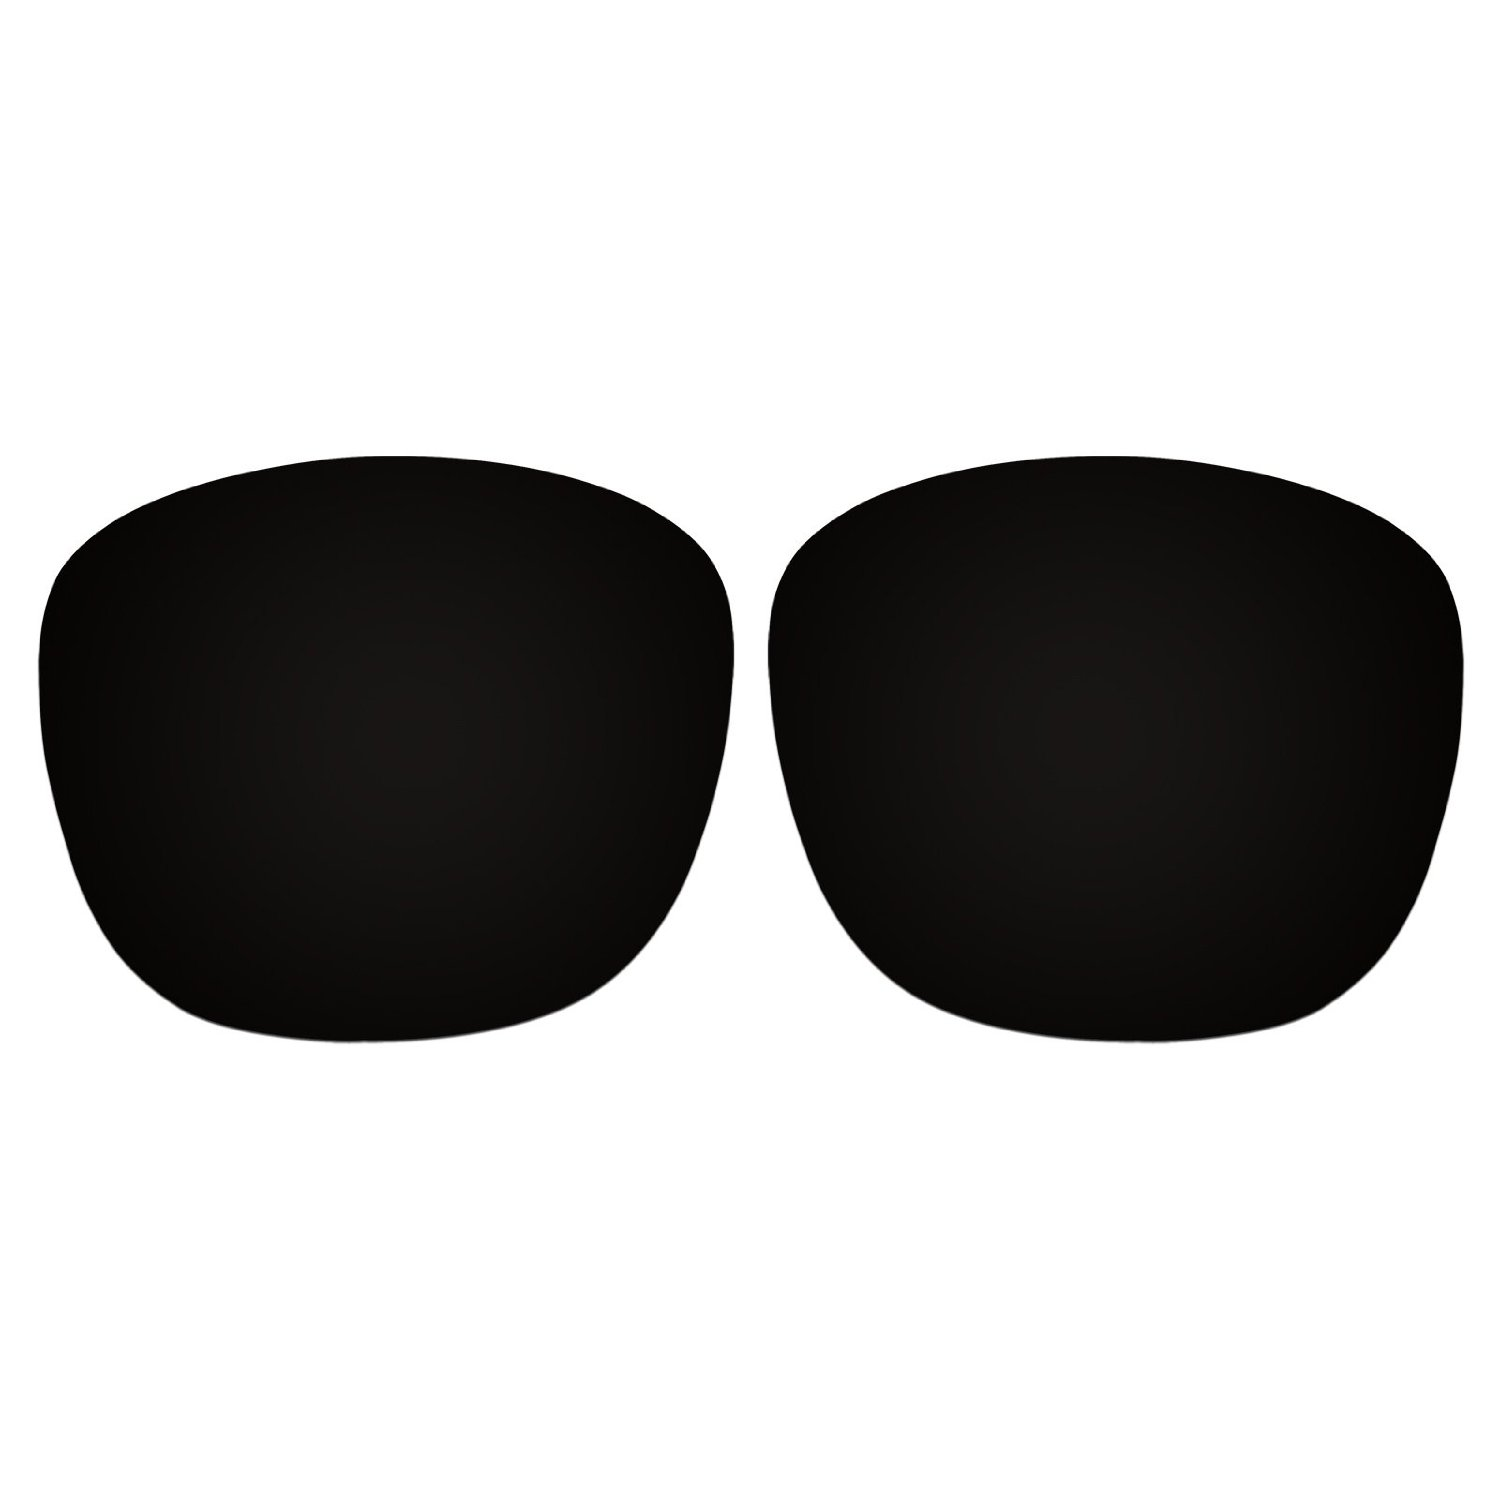 a38f5a698d1 Get Quotations · Polarized Replacement Sunglasses Lenses for Spy Optics  Beachwood - Black